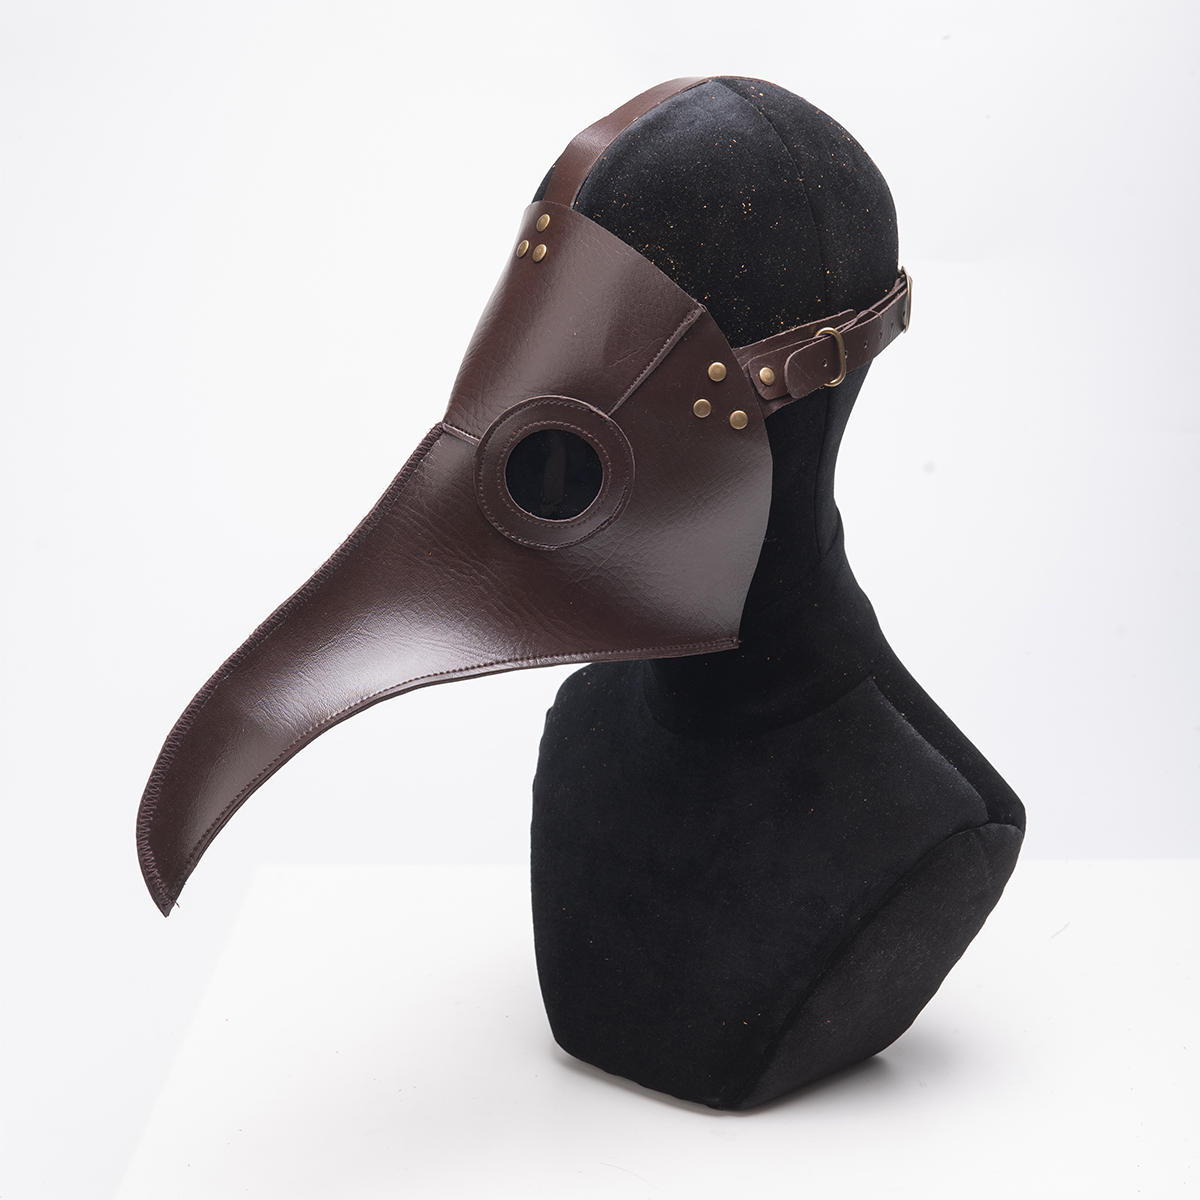 Plague Doctor Mask Long Nose Bird Beak Steampunk Halloween Costume Props Mask Grey